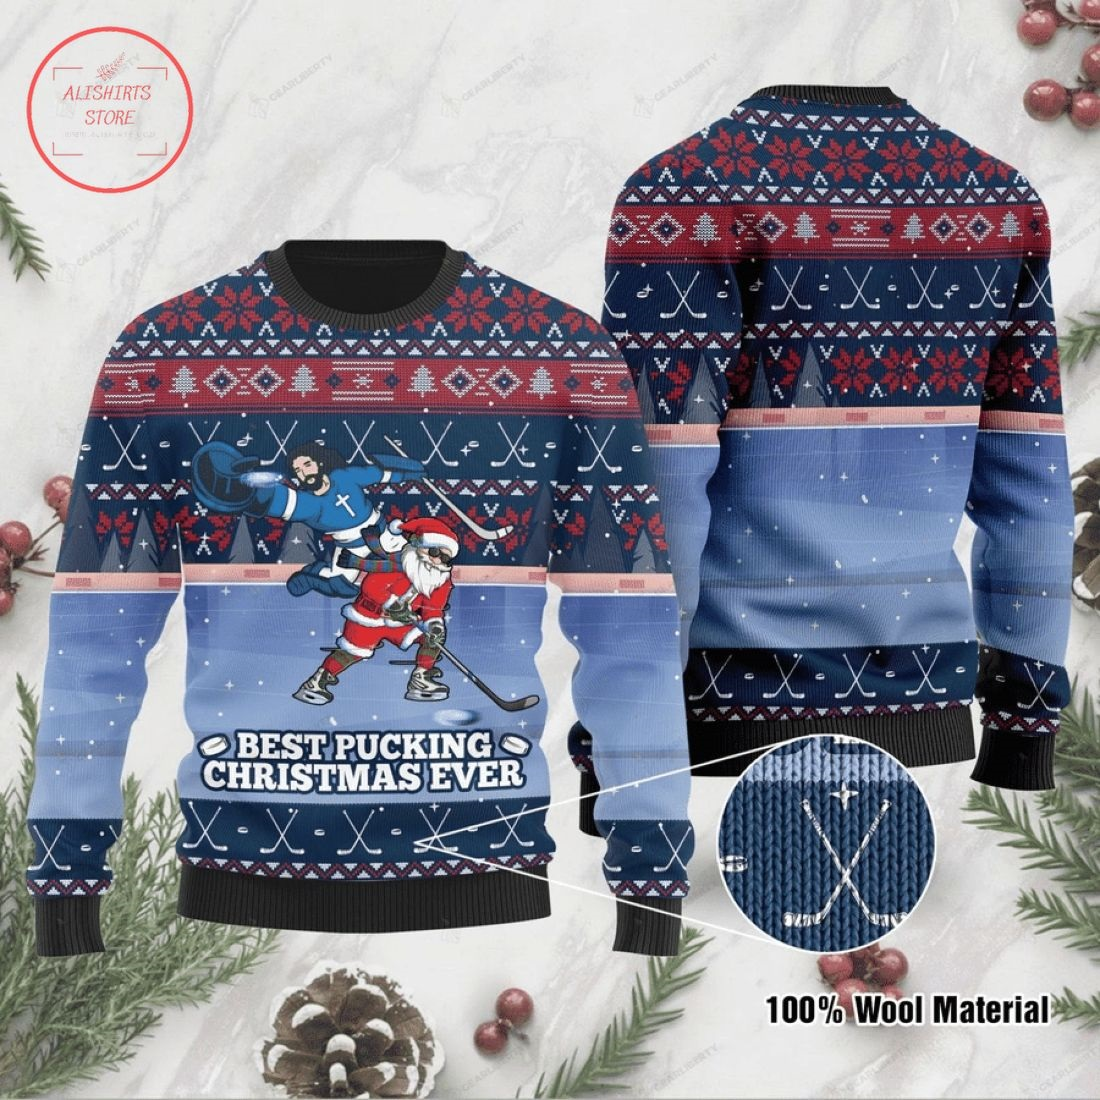 Best Pucking Christmas Ever Ugly Christmas Sweater